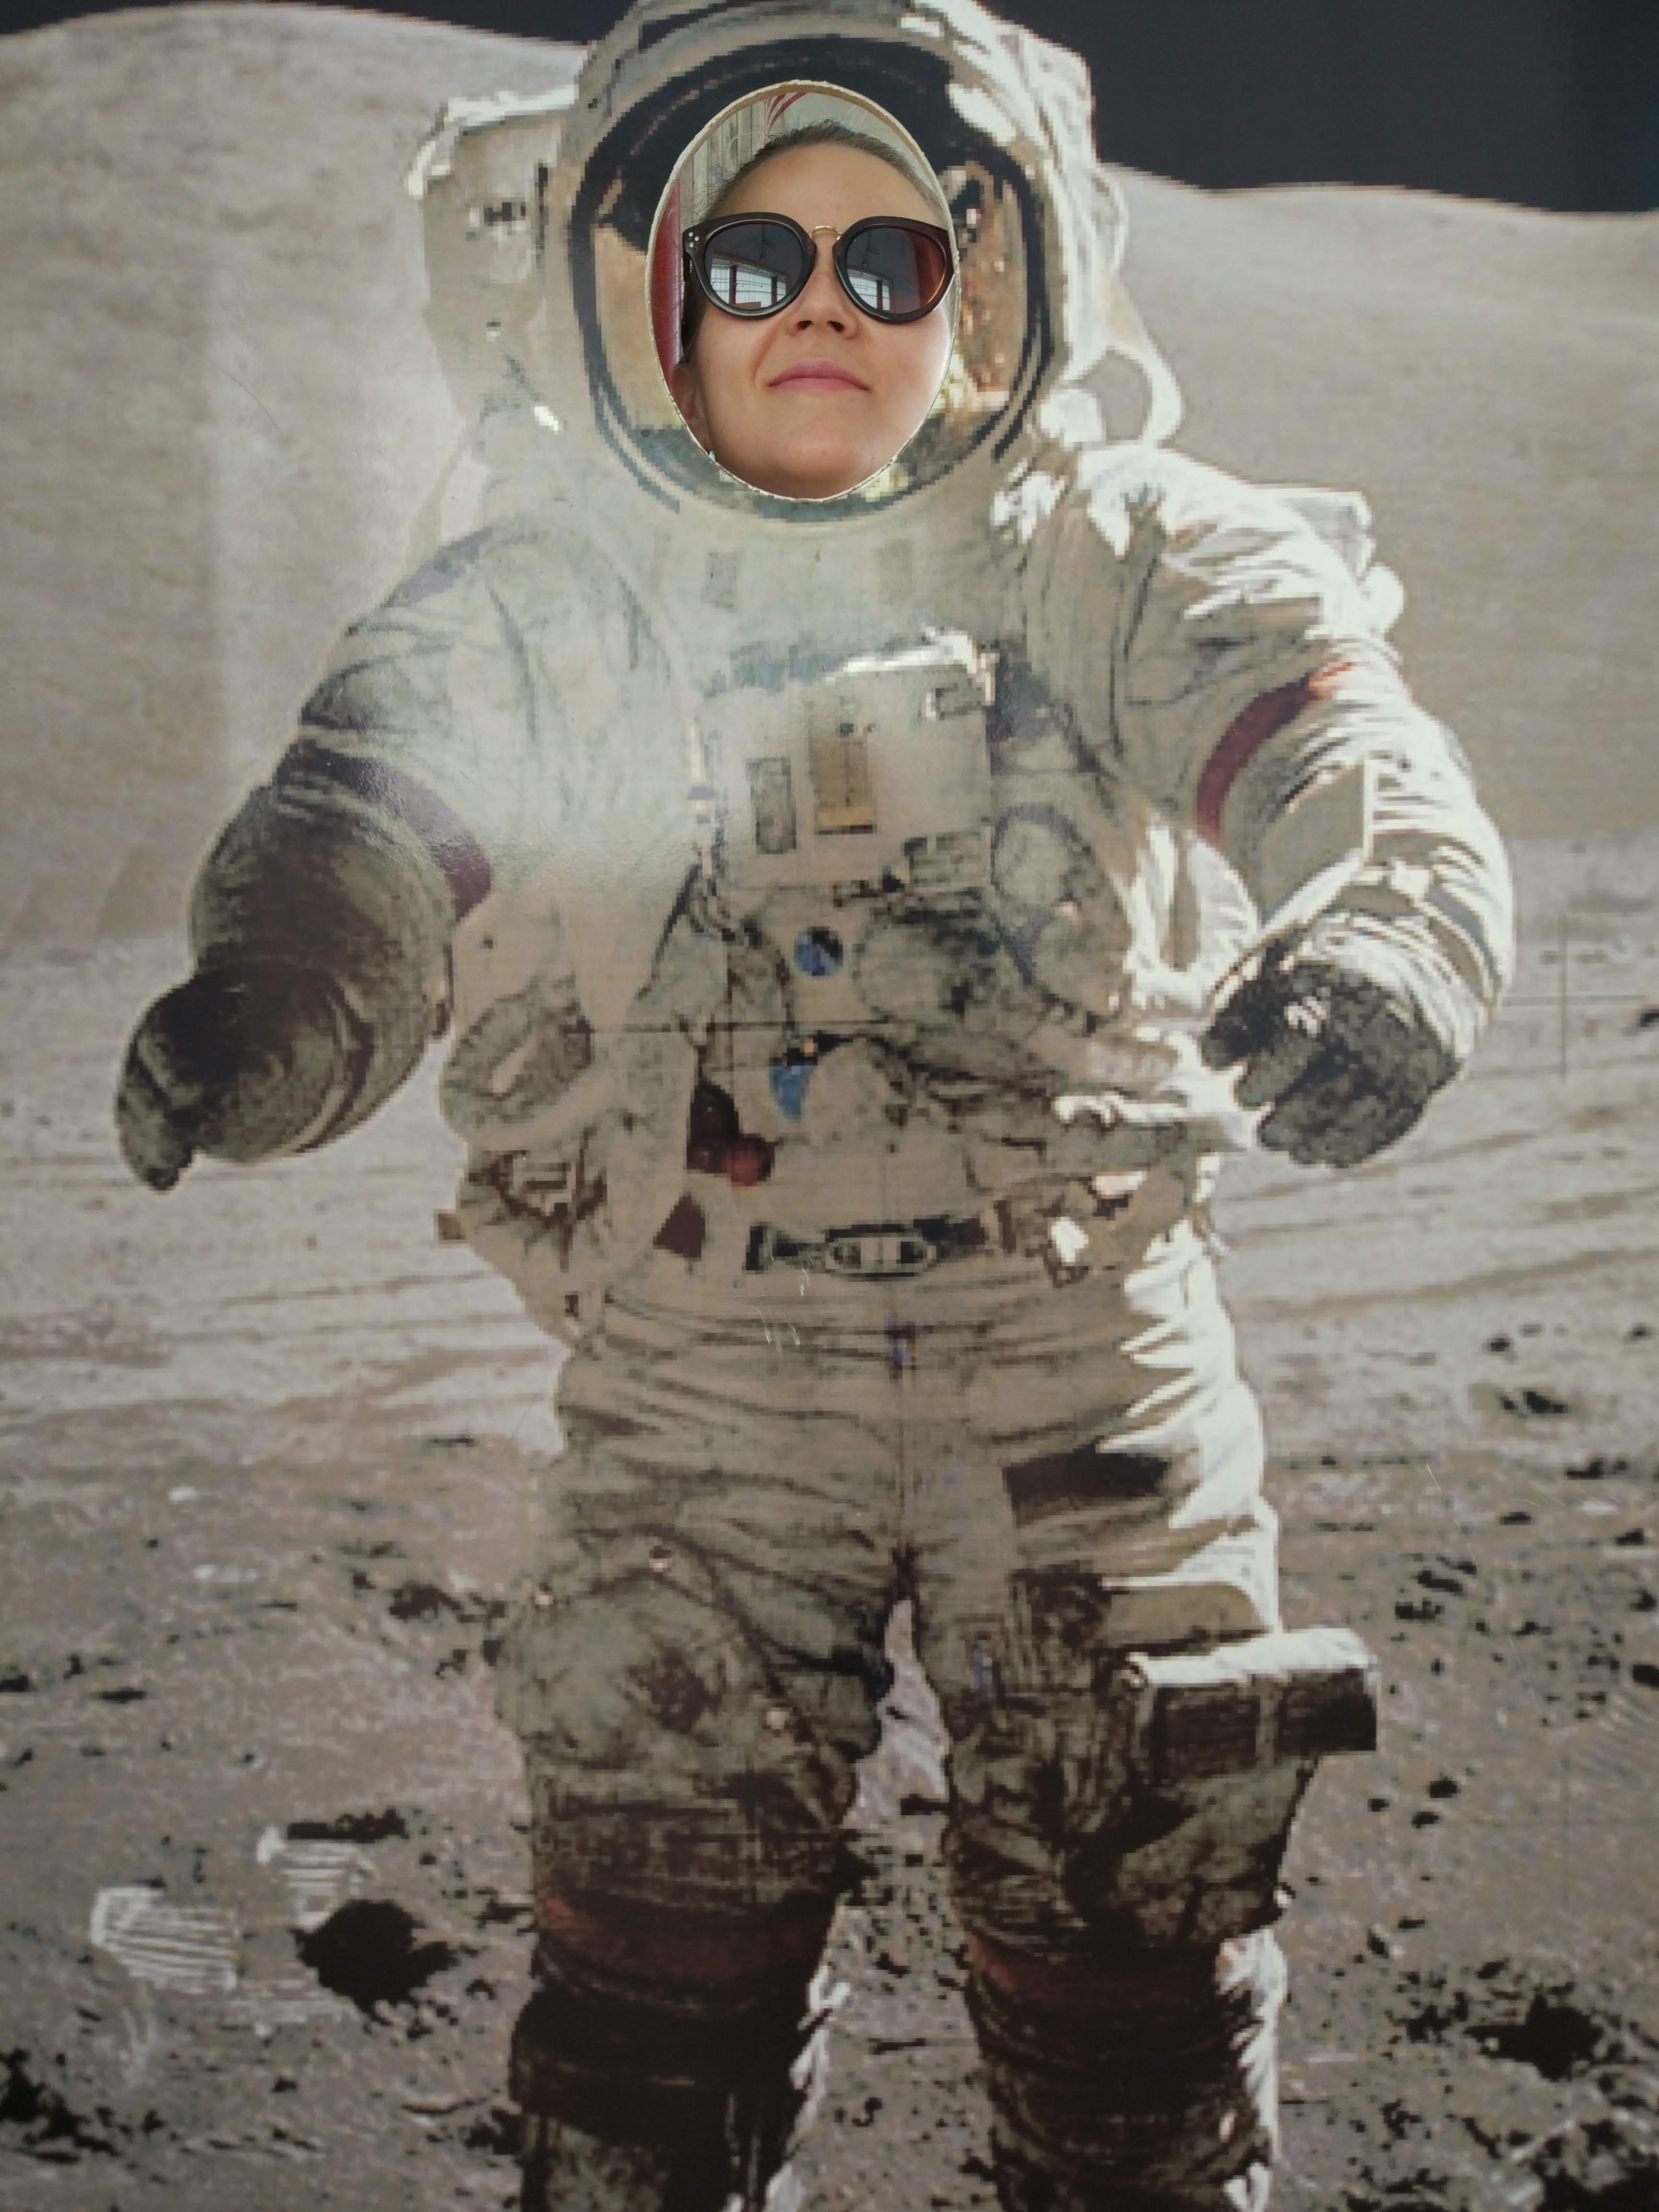 Me trying to be a spaceman